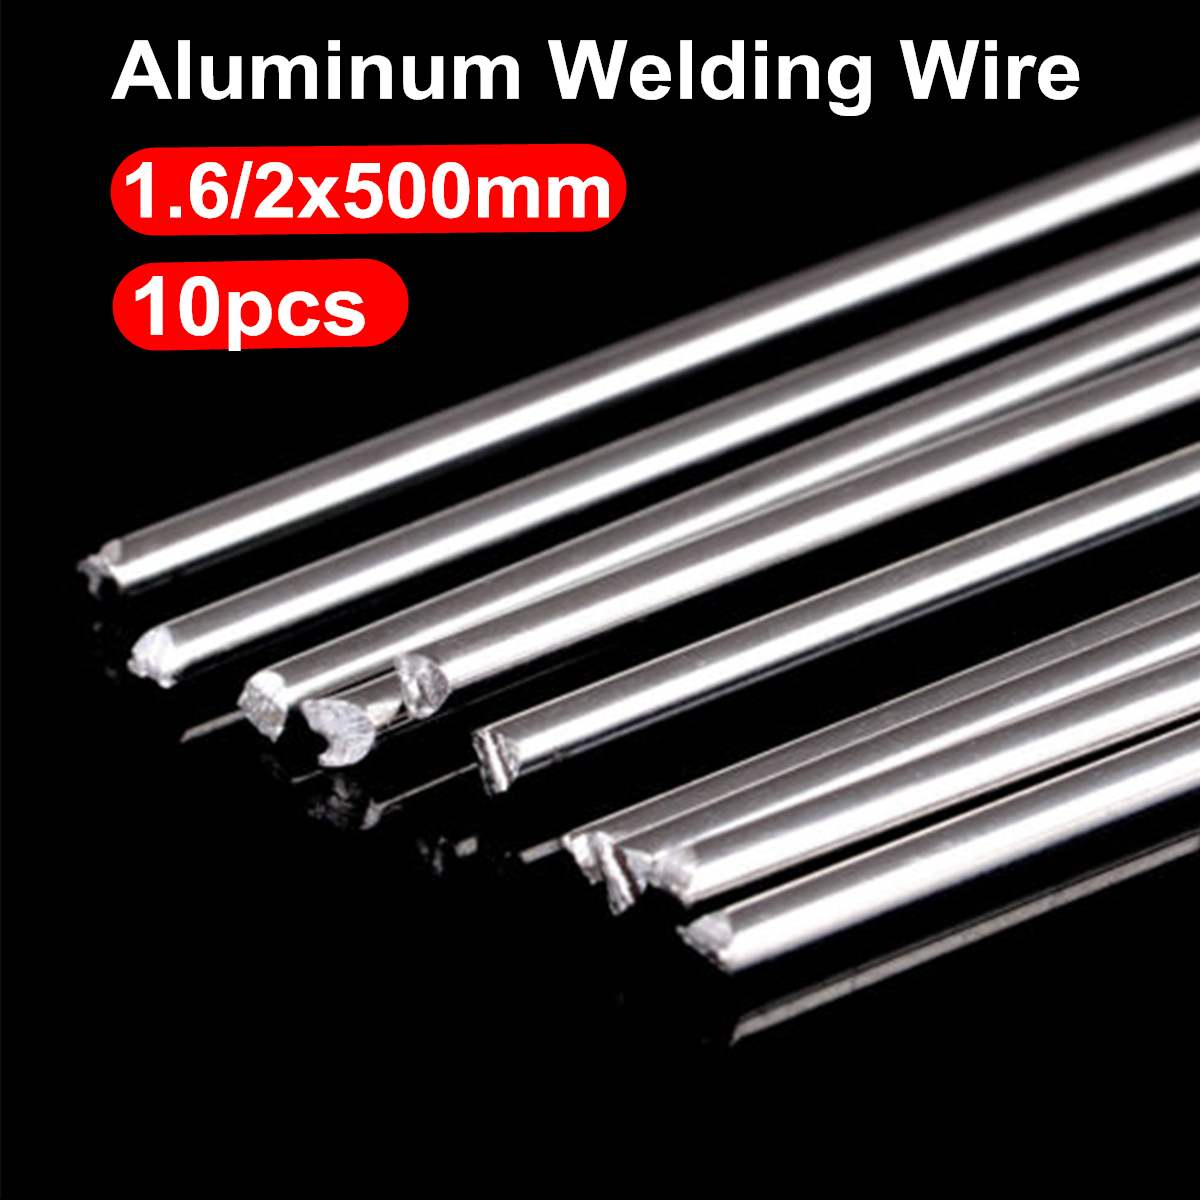 10pcs Solution Welding Rods Low Temperature Aluminum Soldering Sticks Flux-Cored Rod Kits 1.6mm/2mm